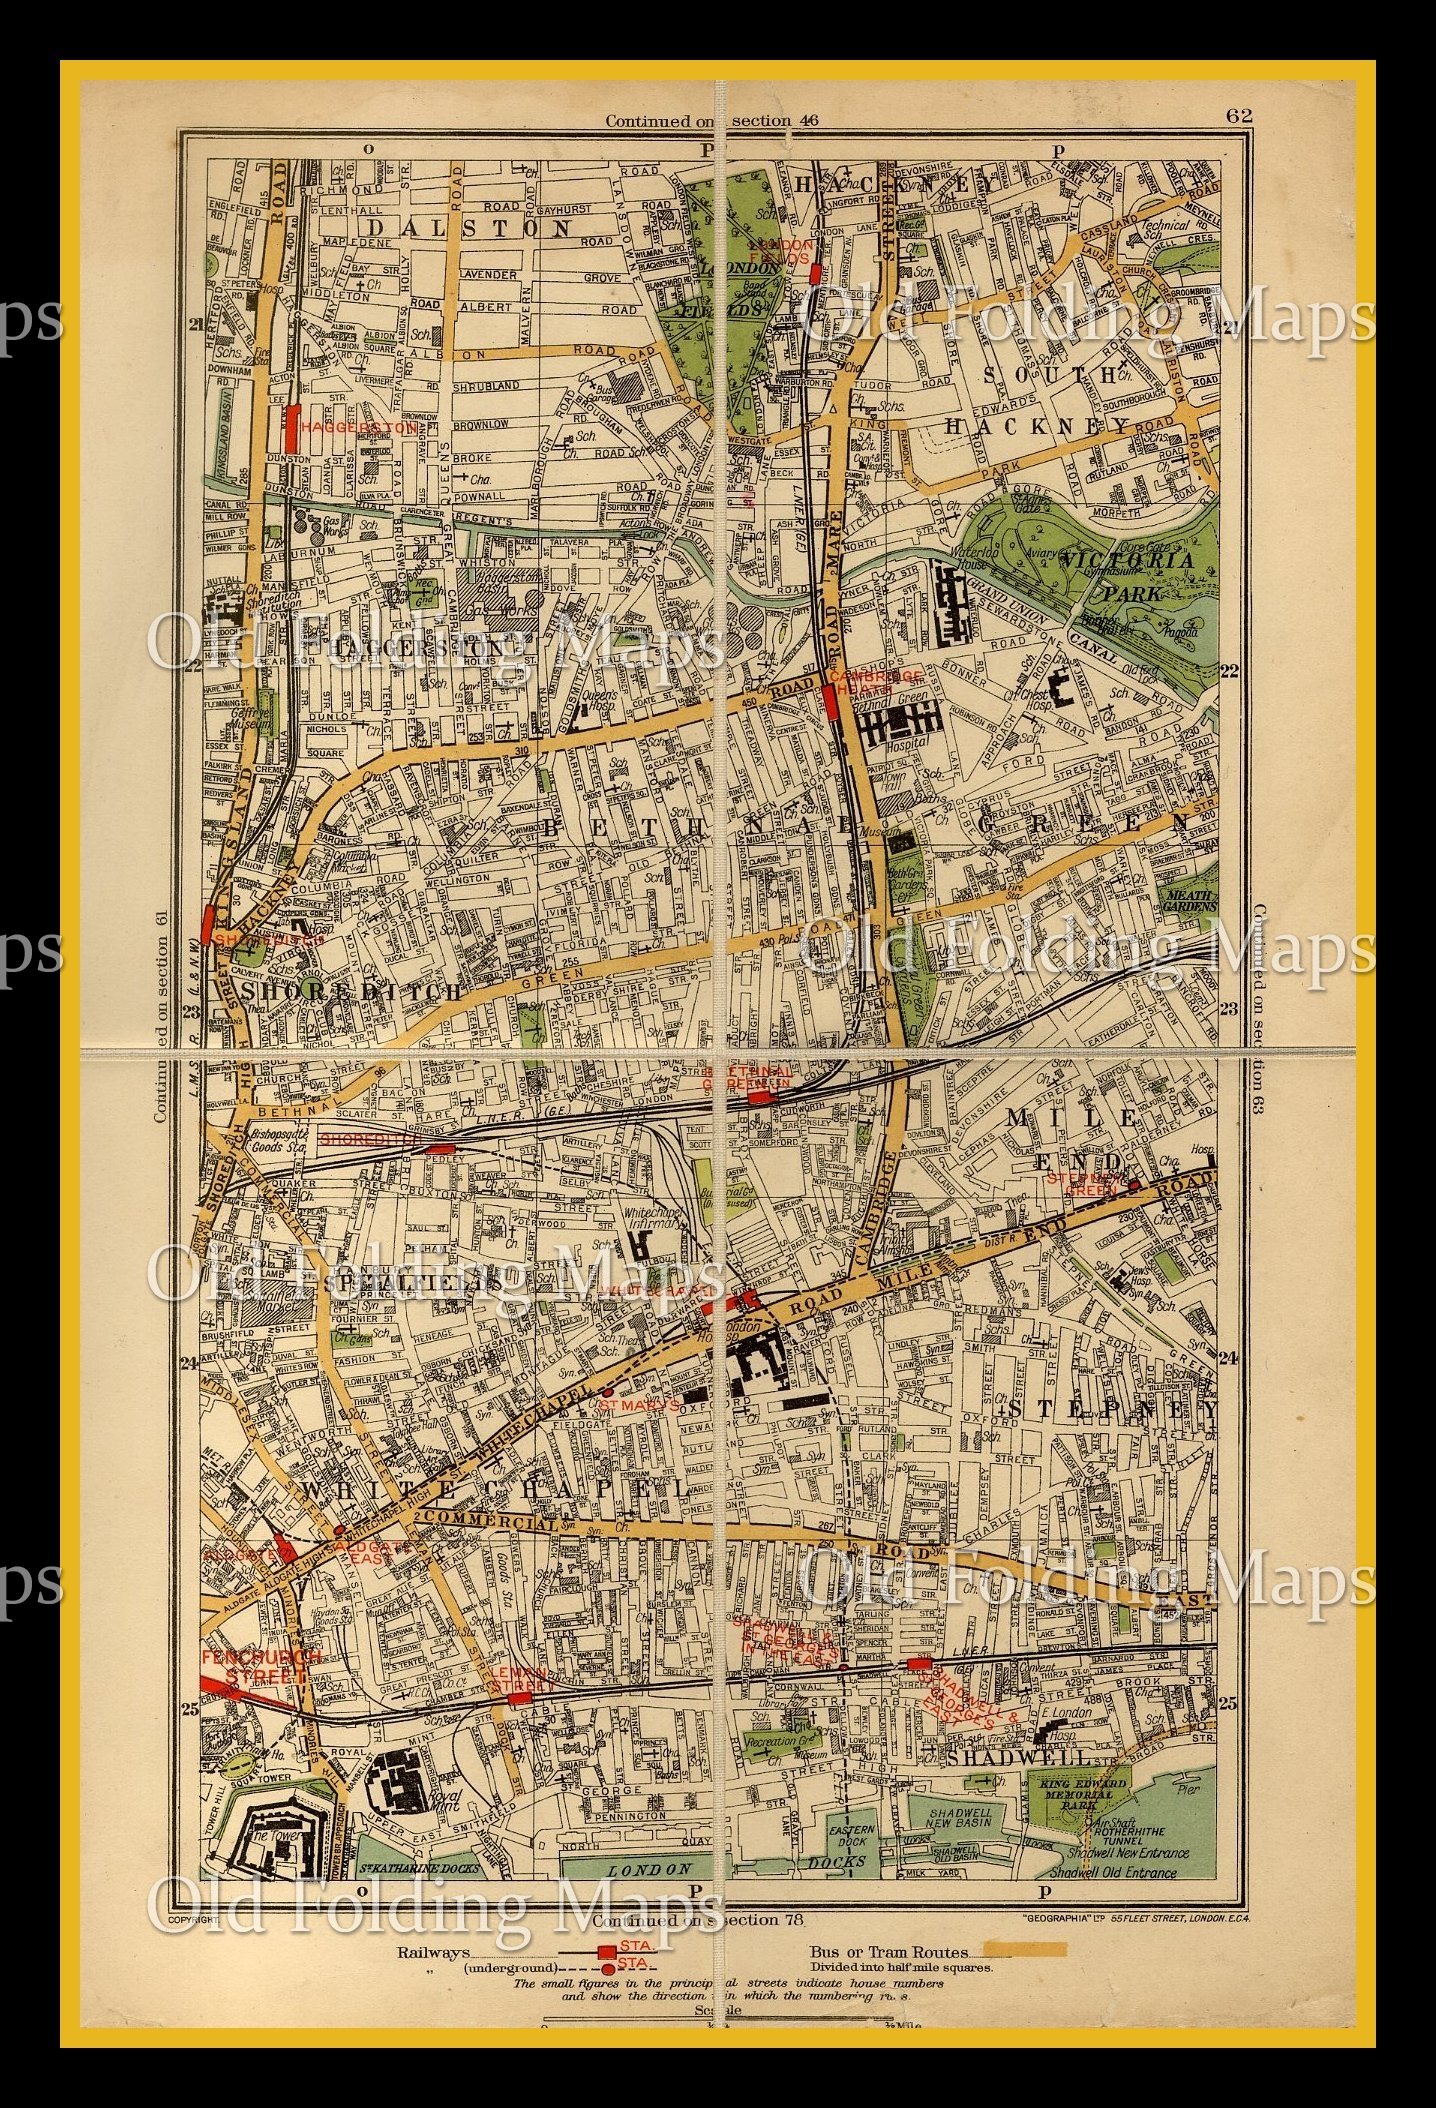 Shoreditch Map: Old London Map Of Dalston, Shoreditch & Spital Fields